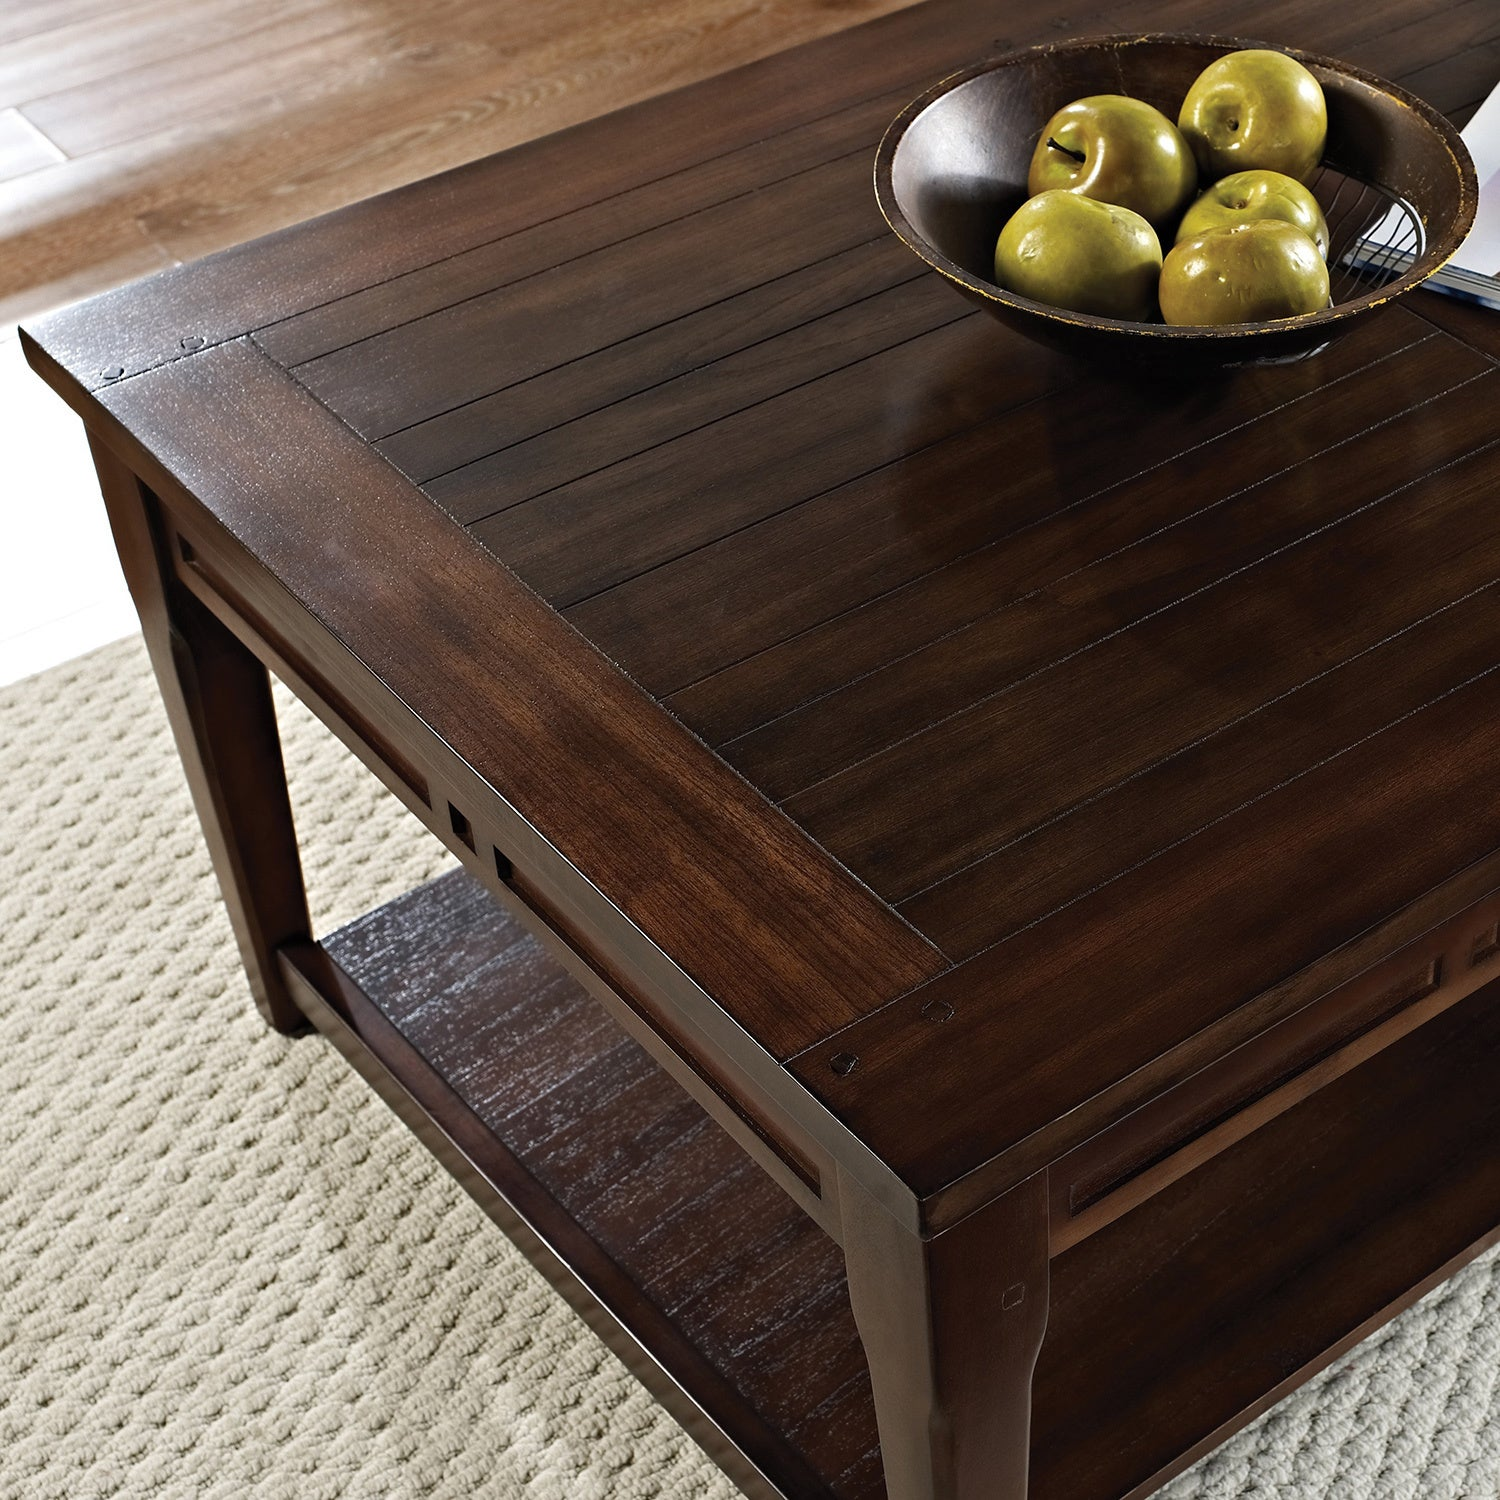 Crosby Mocha Cherry Lift top Coffee Table with Casters by Greyson